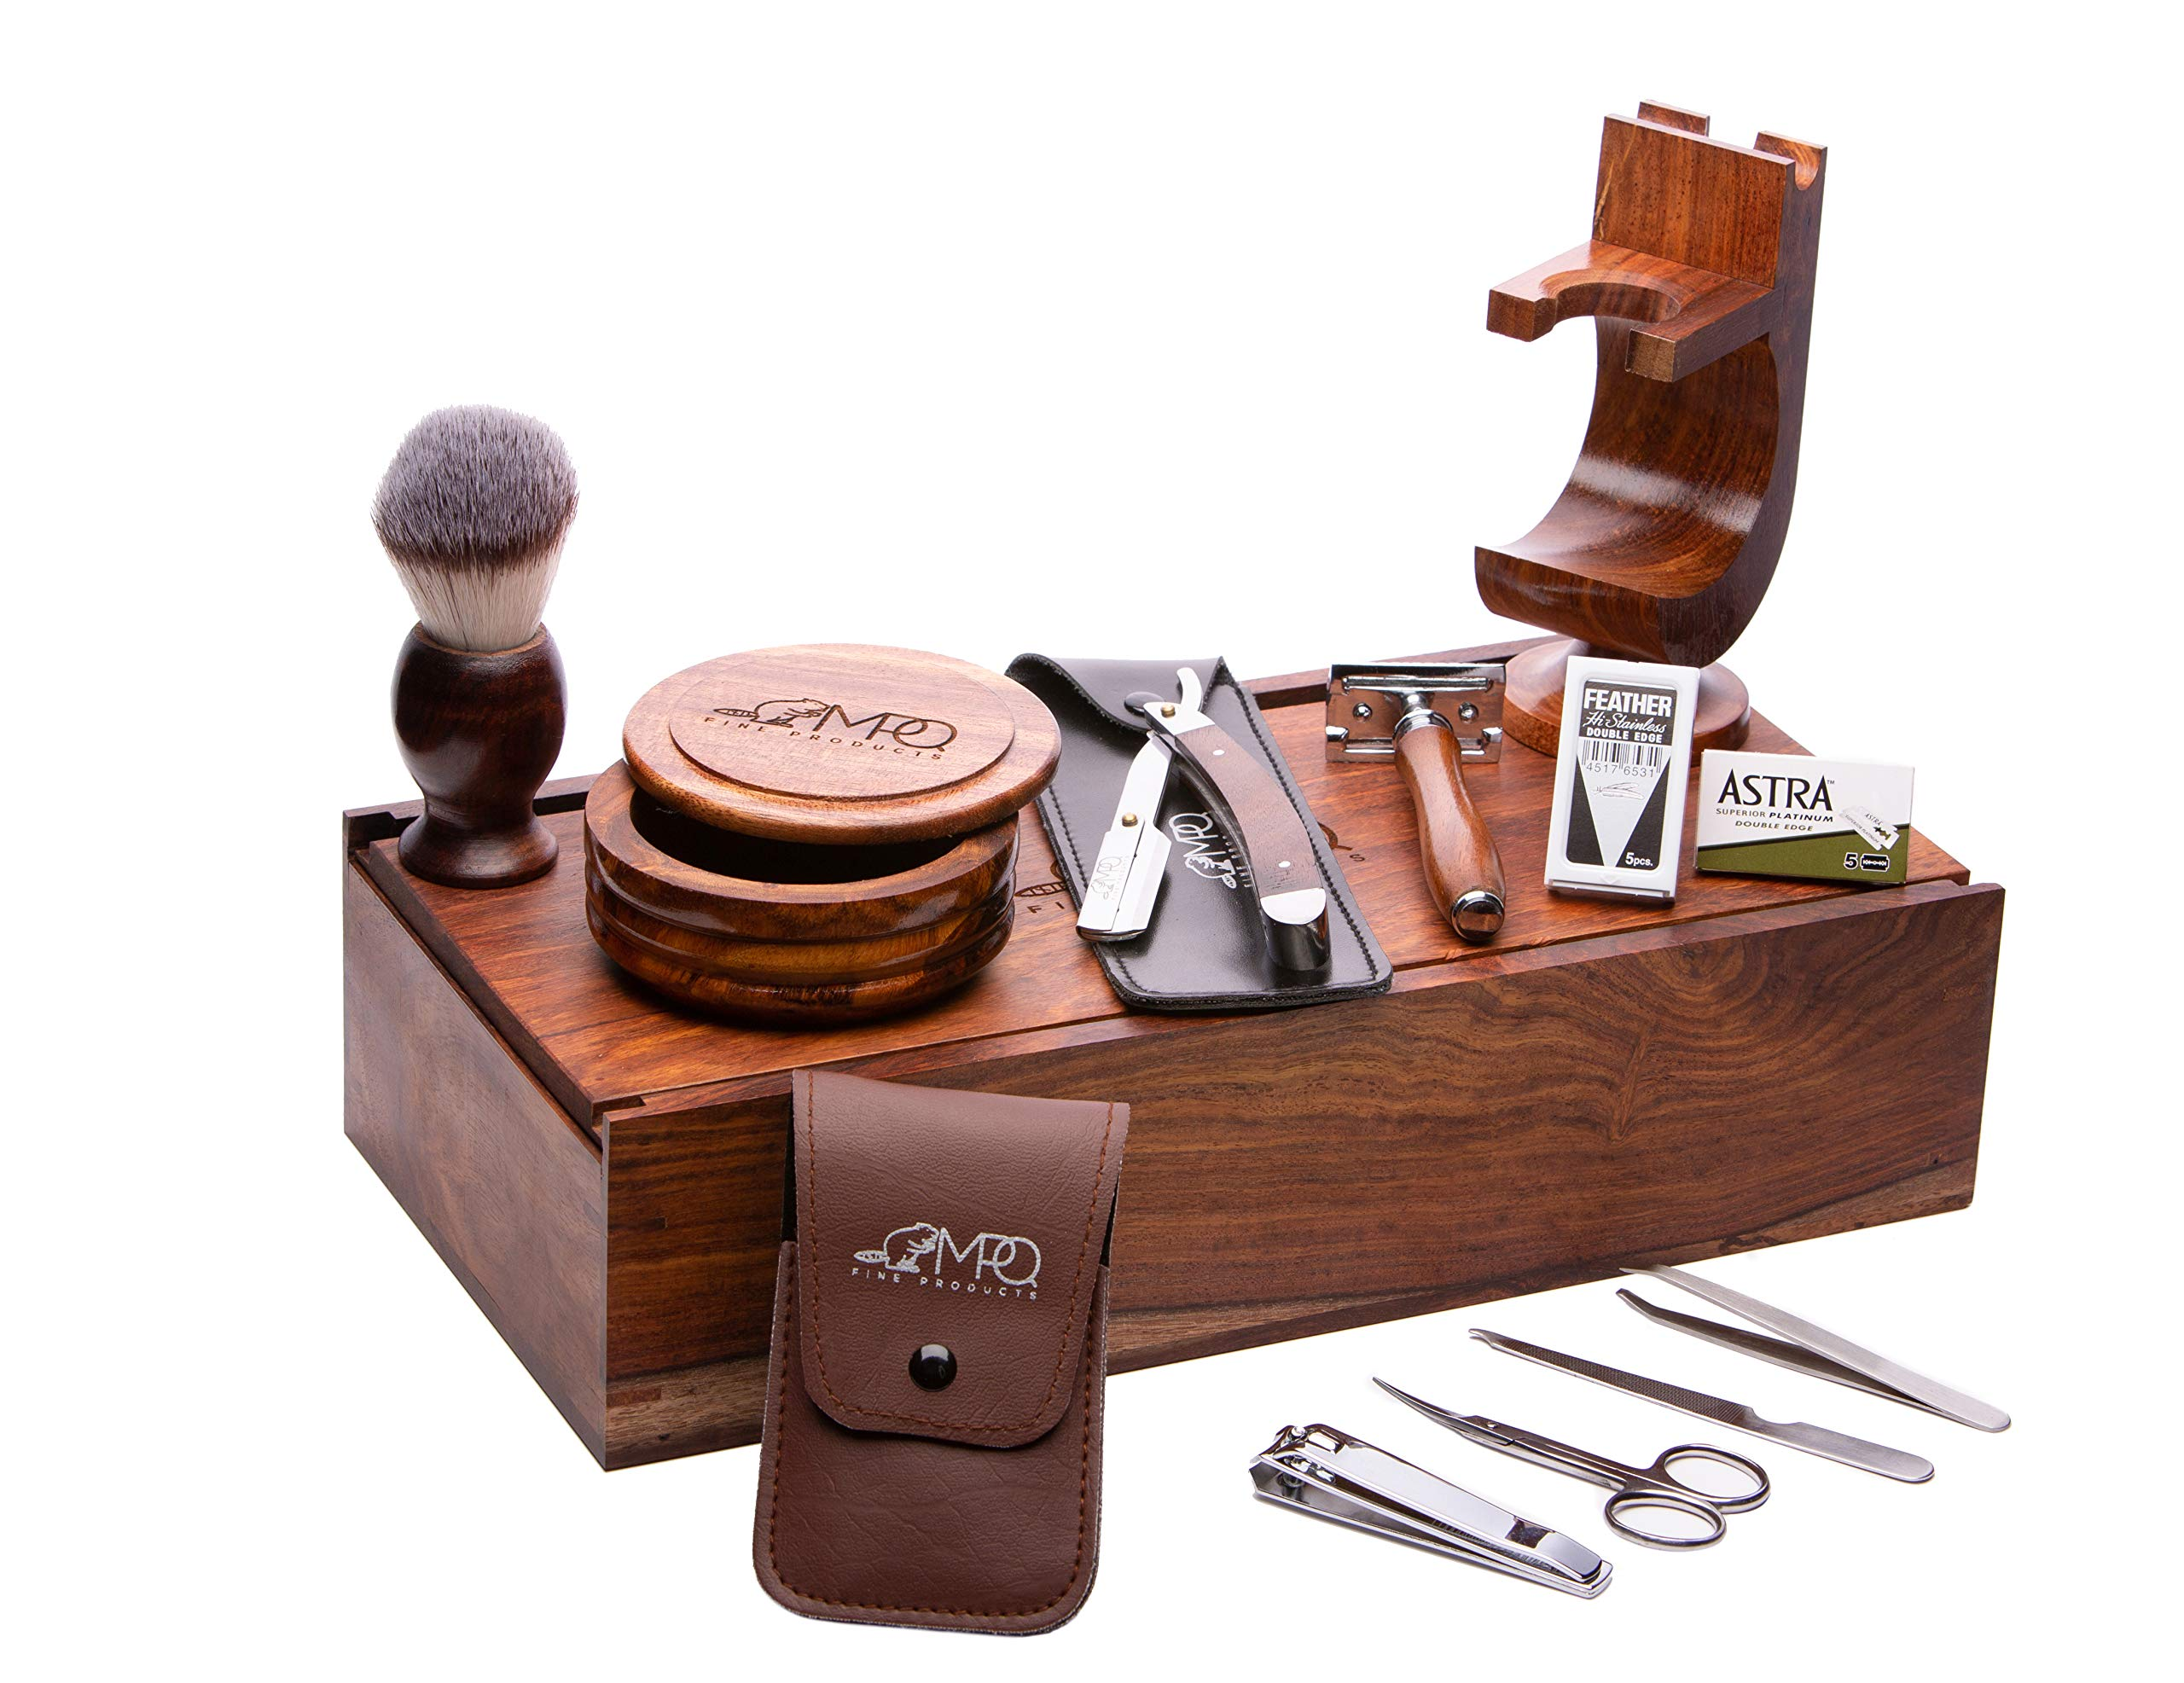 Vintage Luxury and Stylish Rosewood Gentleman Shaving Set   Handcrafted 13 Piece Professional Shaver Kit   Safety Razor, Straight Razor, Wooden Shaver's Brush, Soap Bowl, Shaving Stand, Grooming Tools by MPQ